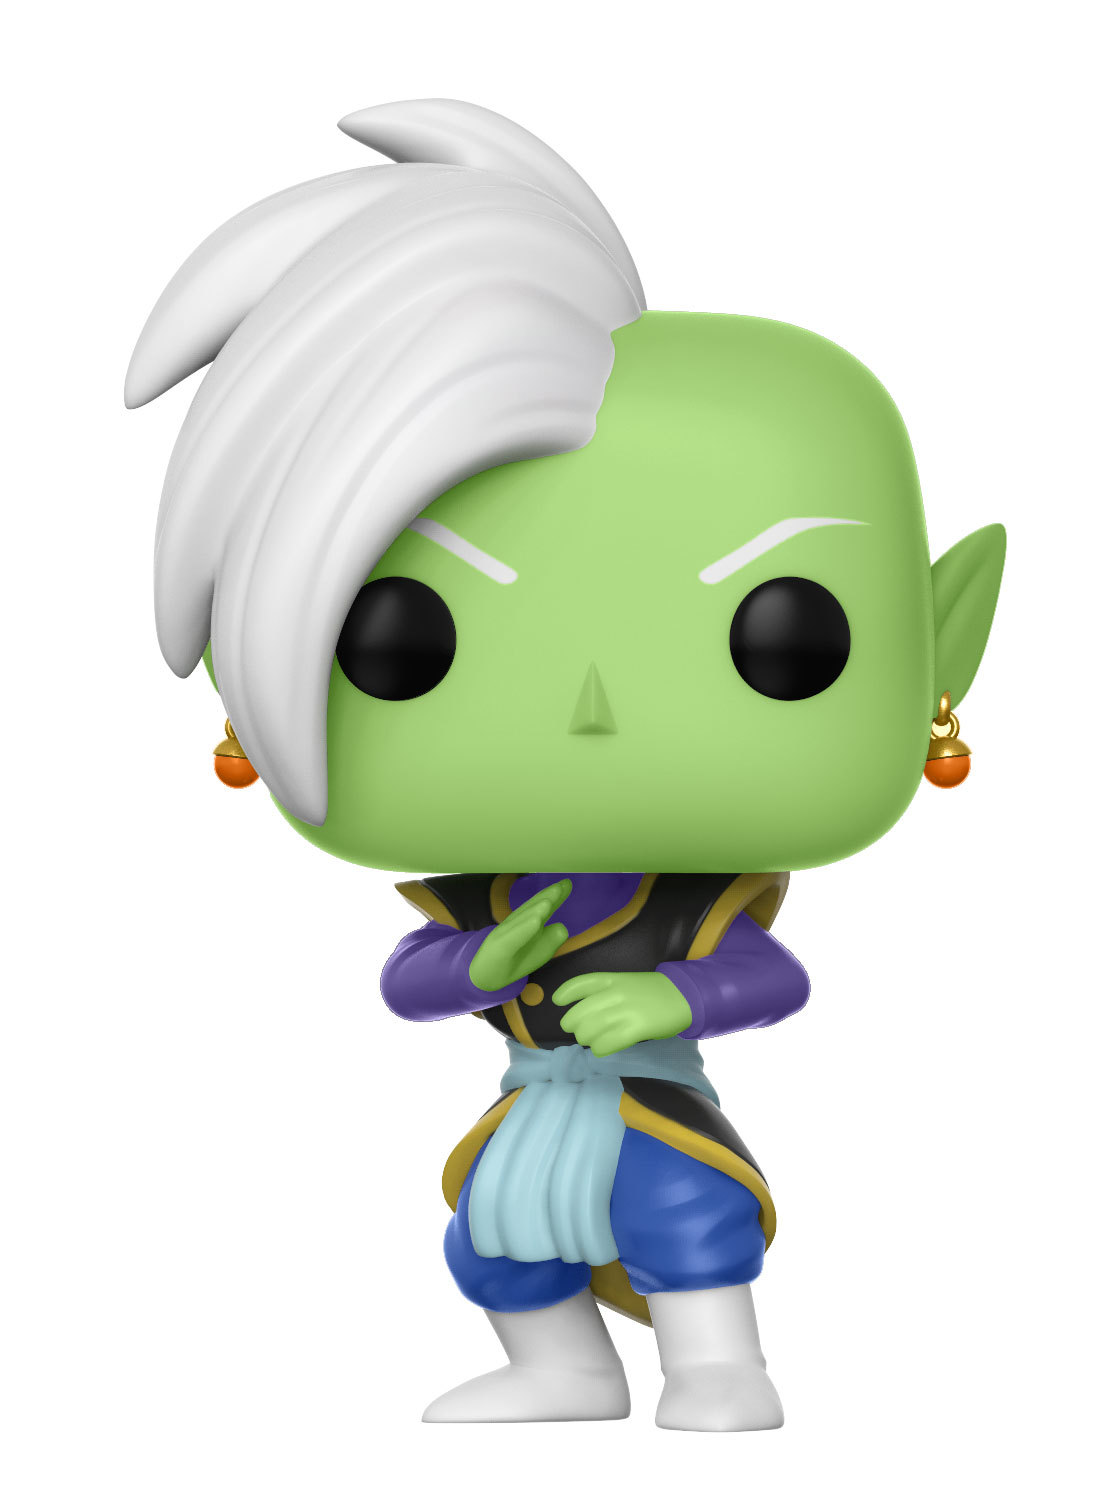 Dragon Ball Super – Zamasu Pop! Vinyl Figure image